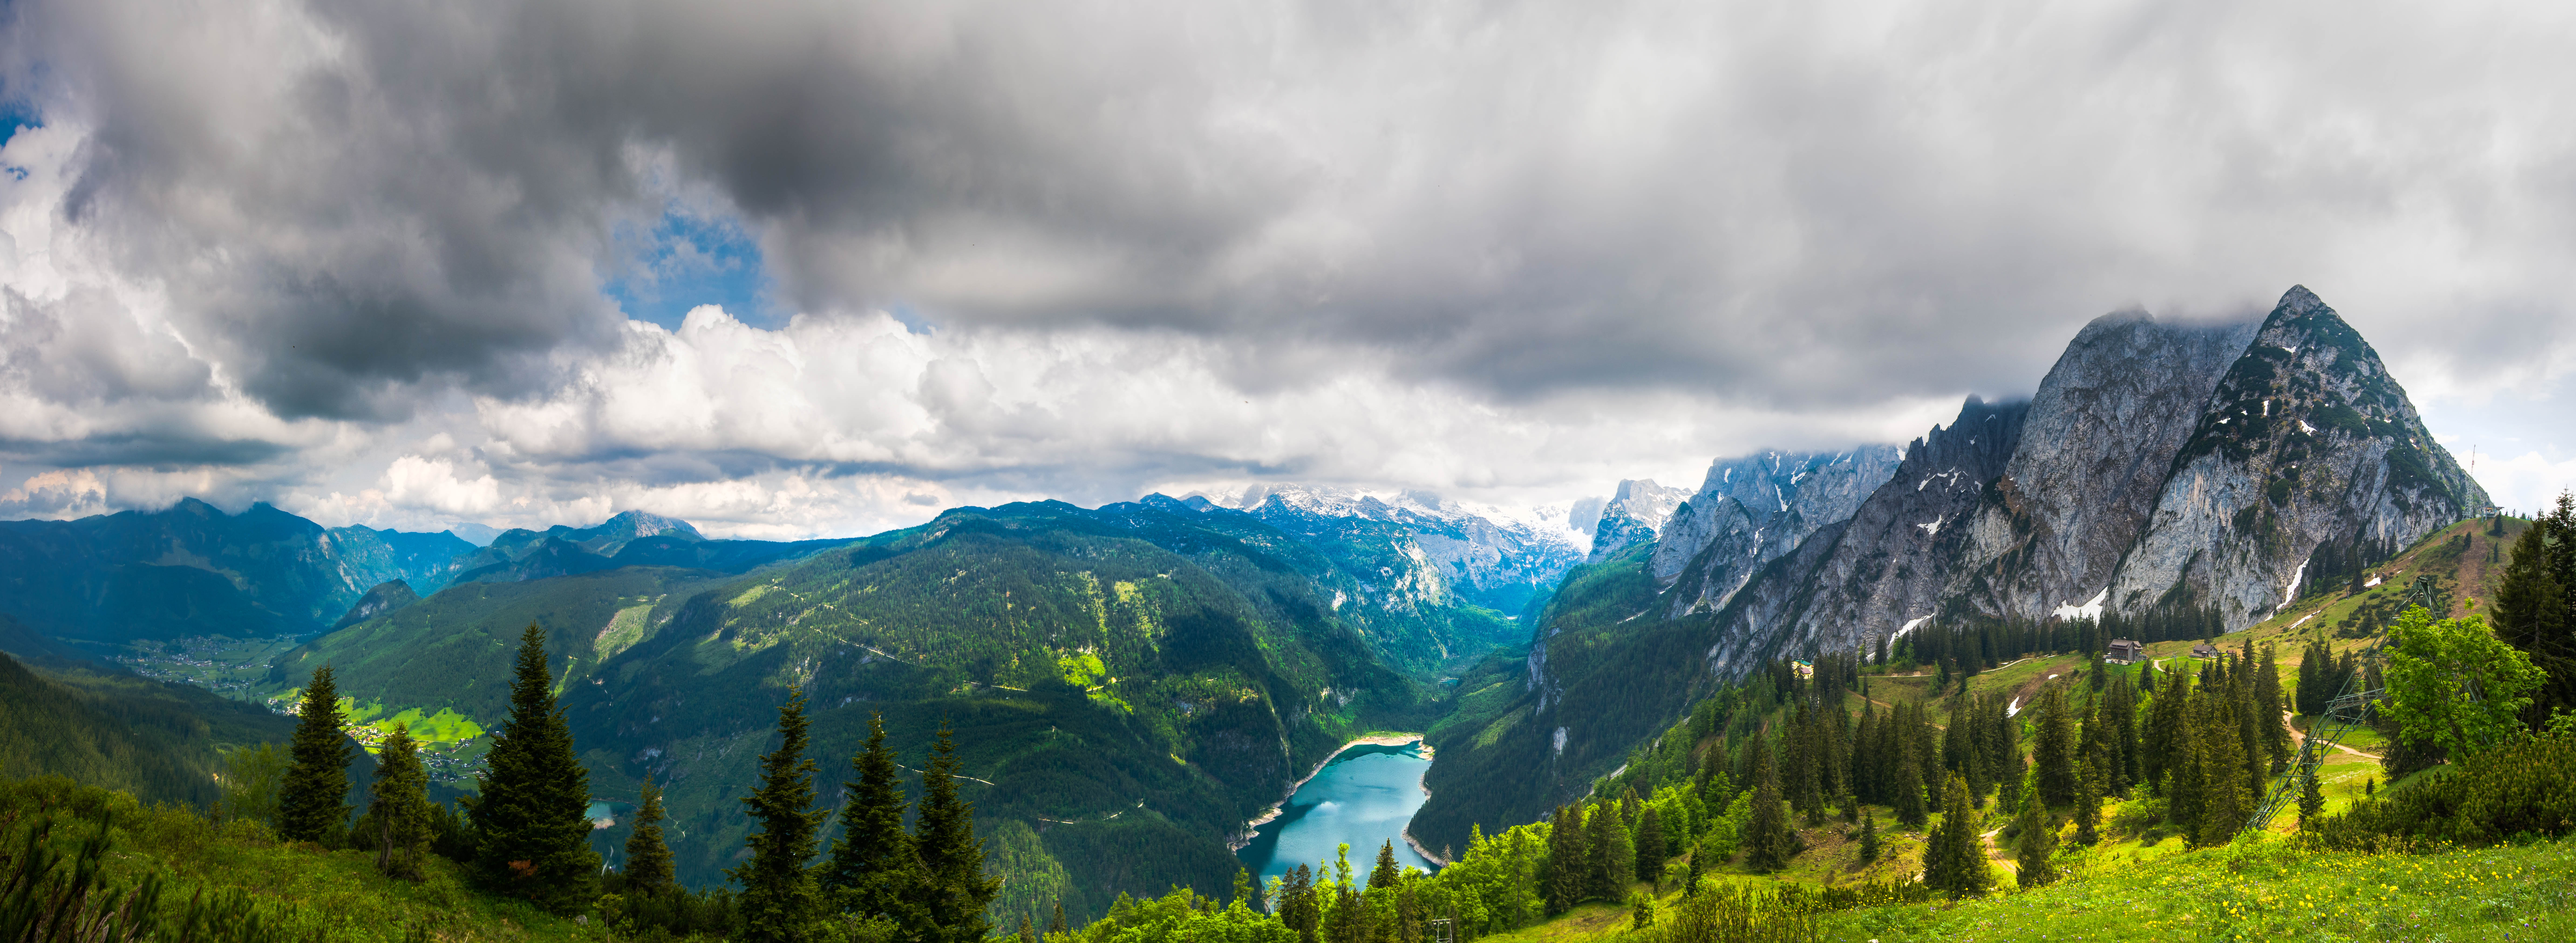 Panoramic view from ranges in Zwieselalm : its truly magical view with a clear view of lake Vorderer : TravelAnubhav (Travel Anubhav)